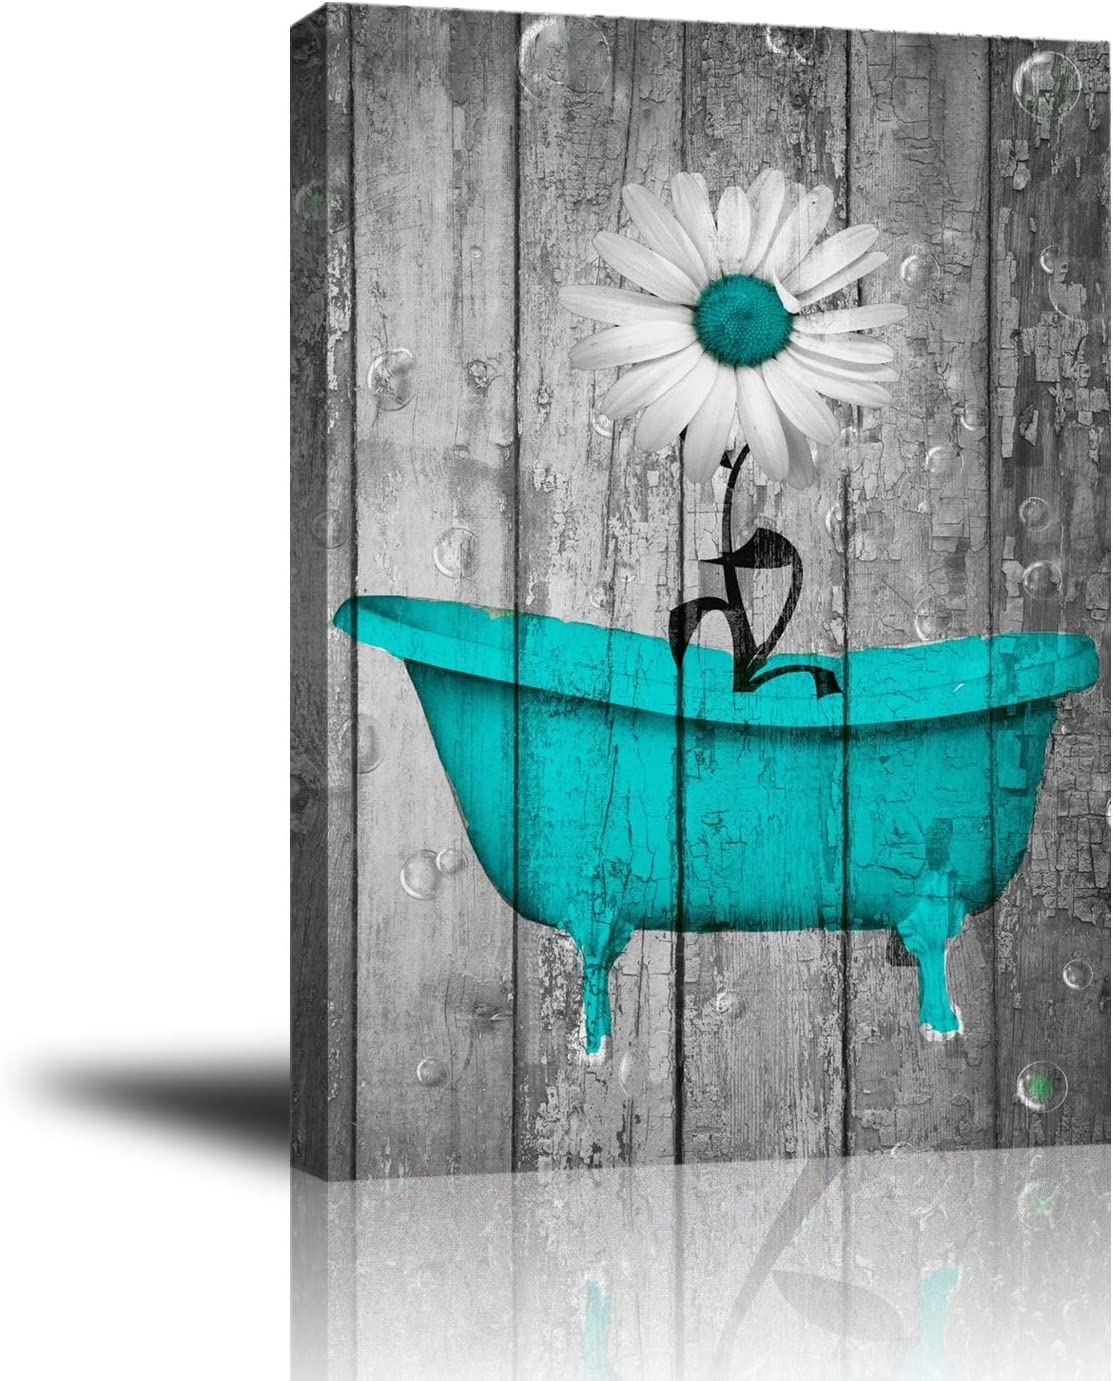 Amazon Com Giclee Canvas Wall Art For Home Decoration Abstract Canvas Wall Decor With Teal White Rustic Flower Bathtub Modern Paintings Picture Decorative Artwork For Livingroom Bedroom Bathroom 16x20 Posters Prints